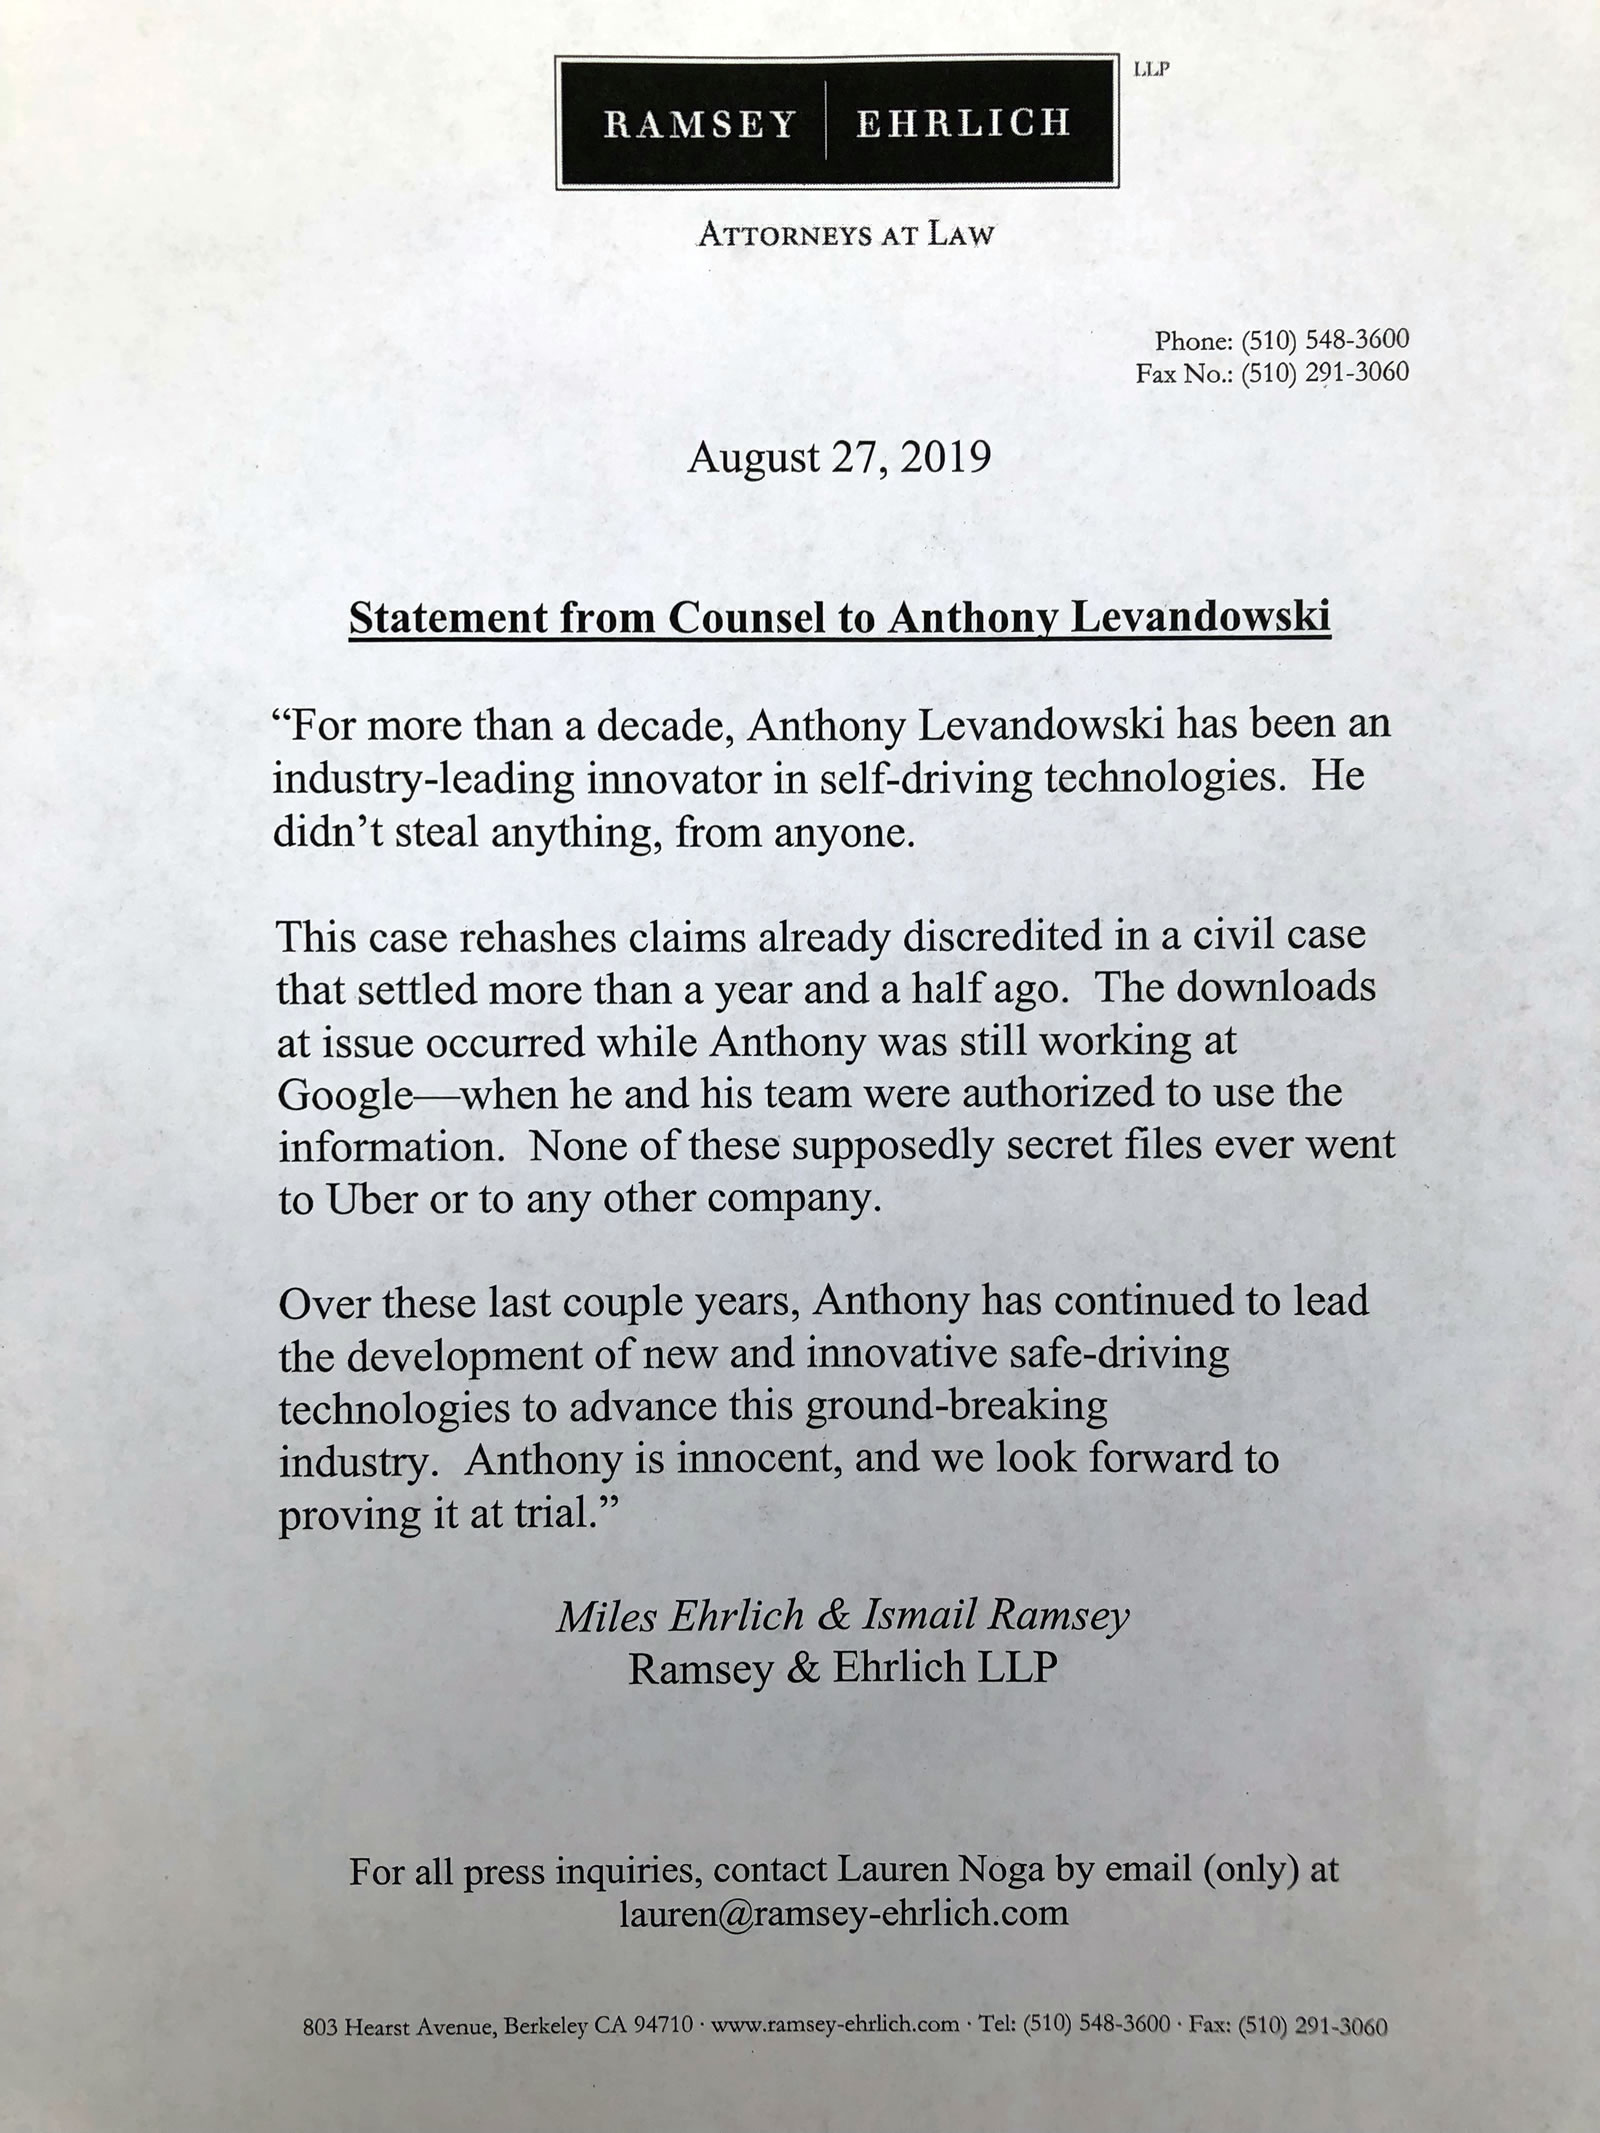 A statement from the attorney for to Anthony Levandowski was released on Tuesday, Aut. 27, 2019.